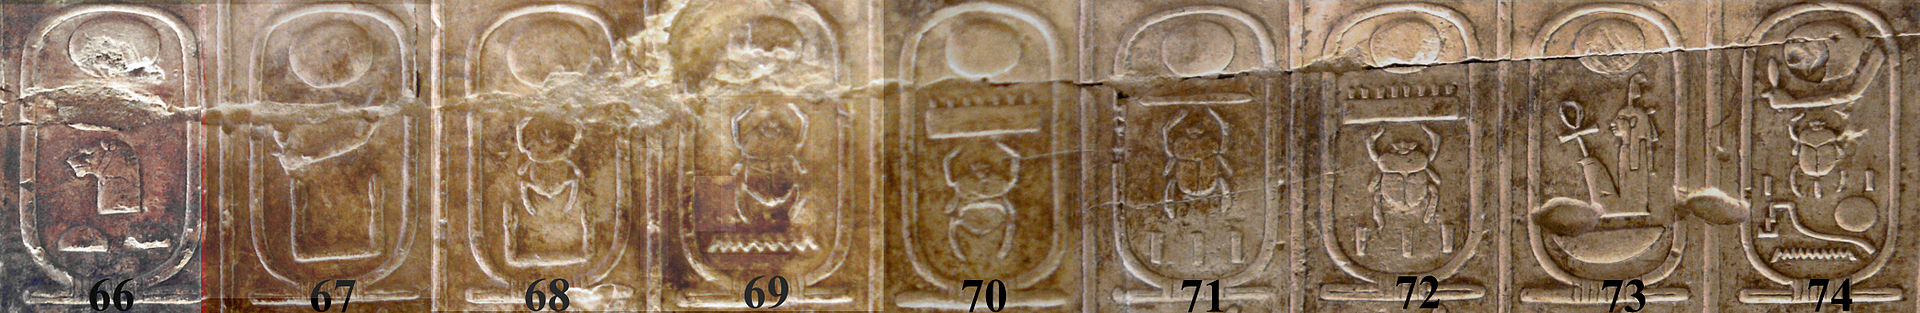 Figure 4, Royal Cartouches of the 18th Dynasty Pharaohs at Abydos. No 73 is Amenhotep III and No 74 is Horemheb. (image Wikimedia Commons)